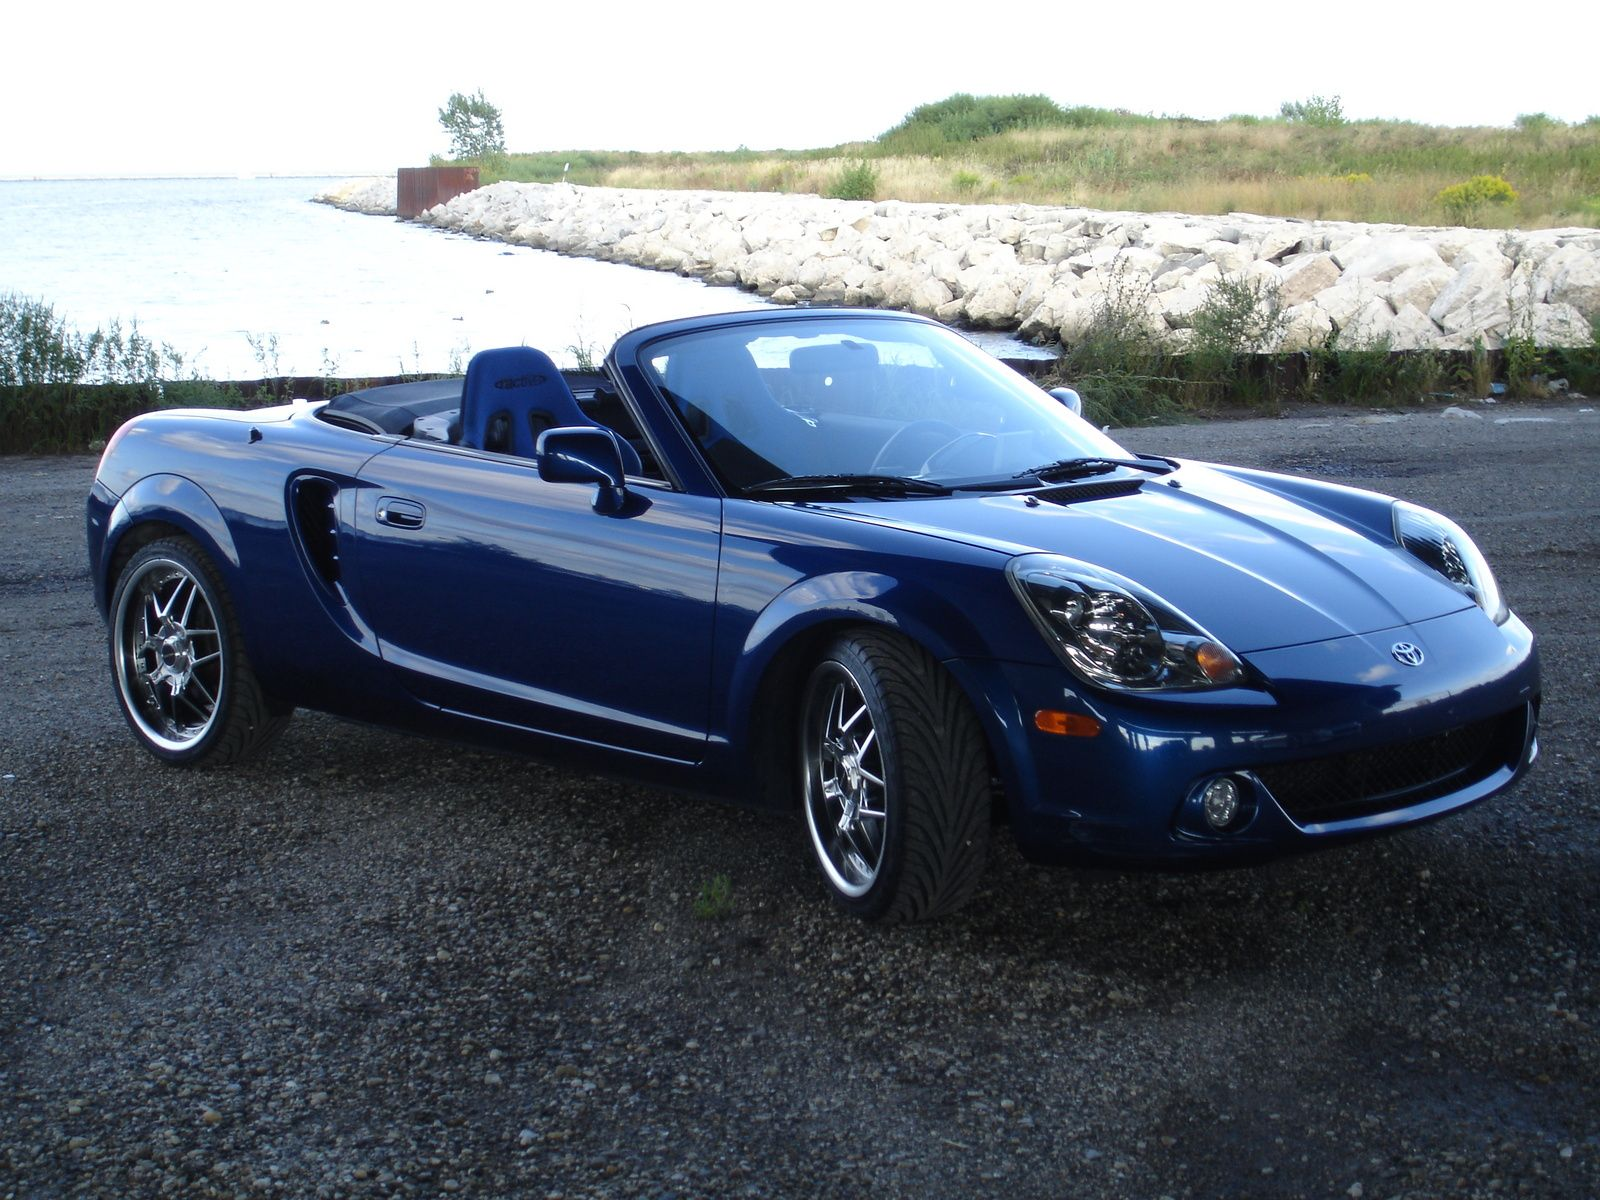 2003 toyota mr2 spyder 138 hp 0 60 7 seconds top speed 129 mph good used one 39 s are for Mr2 spyder interior accessories